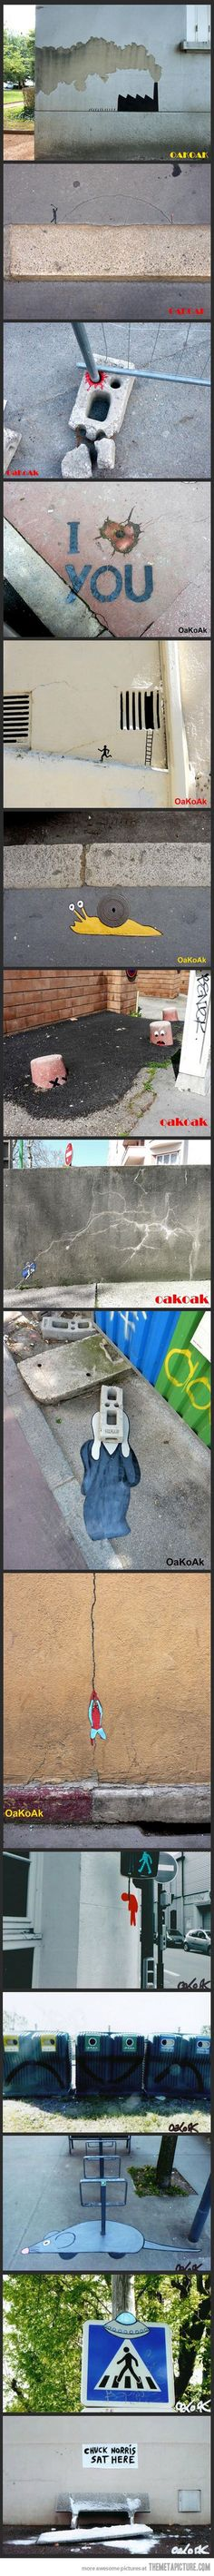 Interesting graffiti. Anyone bored with gang tags? C'mon people, spruce it up. Urban Interventions by OakOak